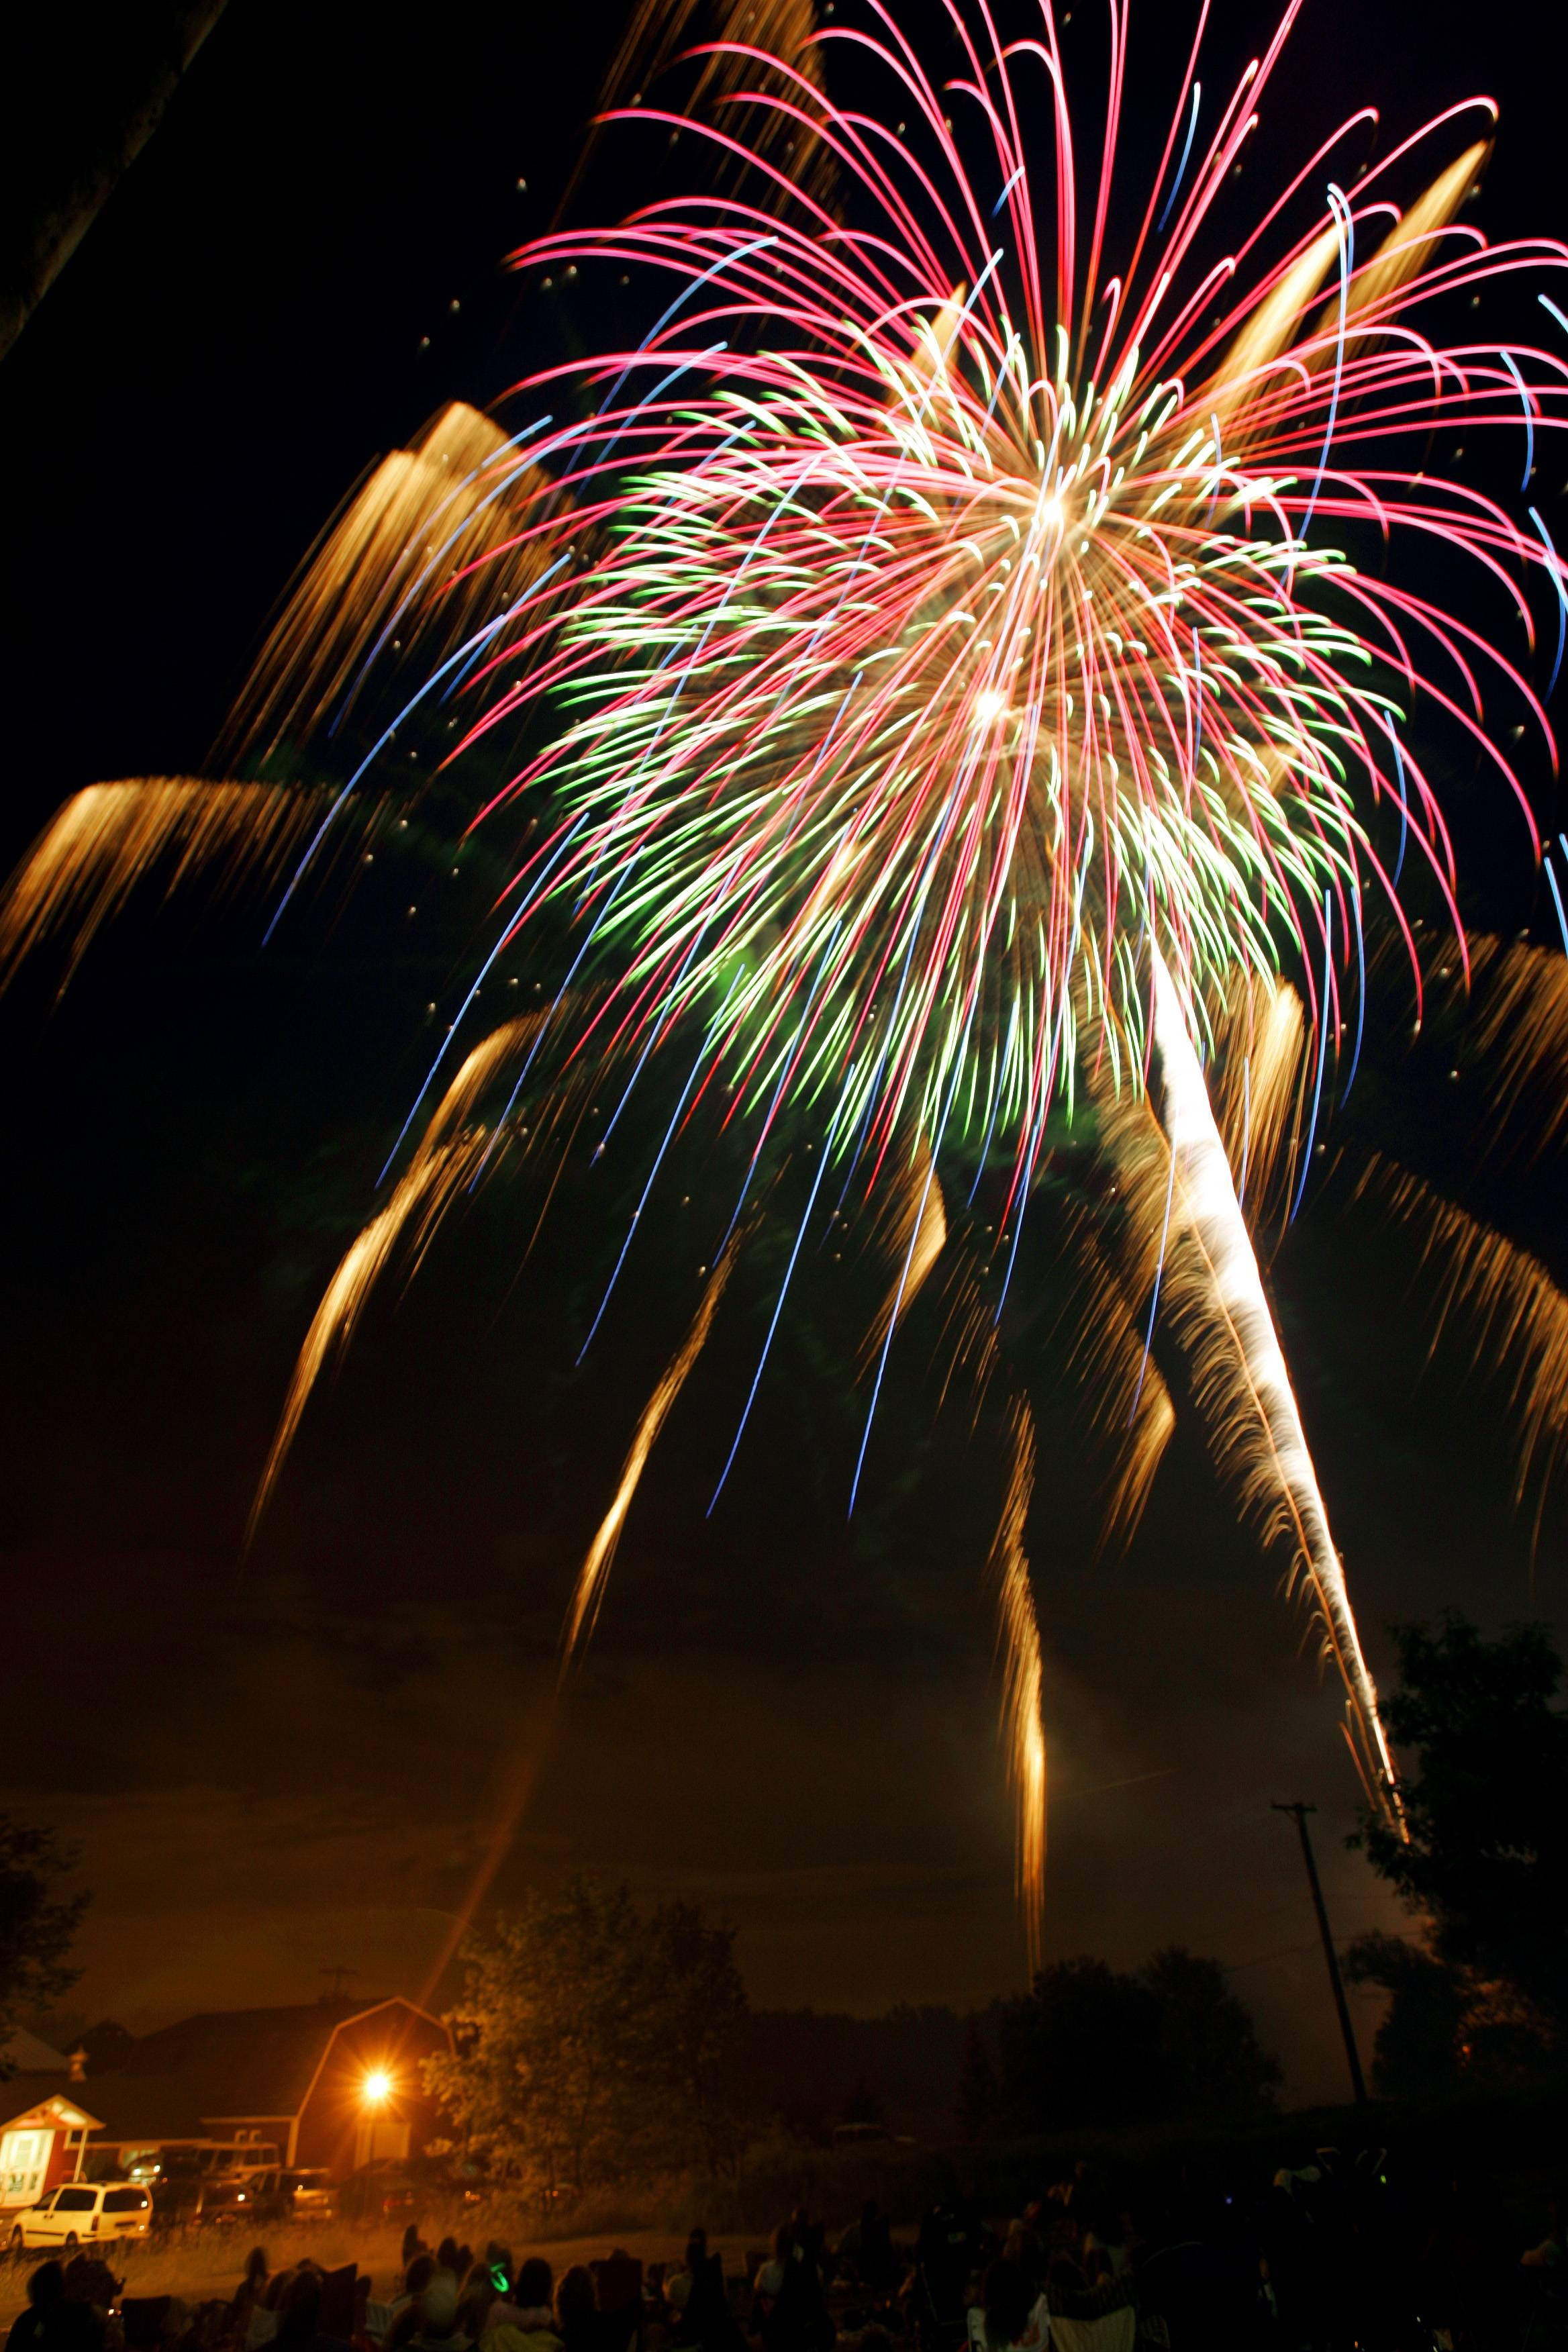 Fireworks! Where to find them in the suburbs